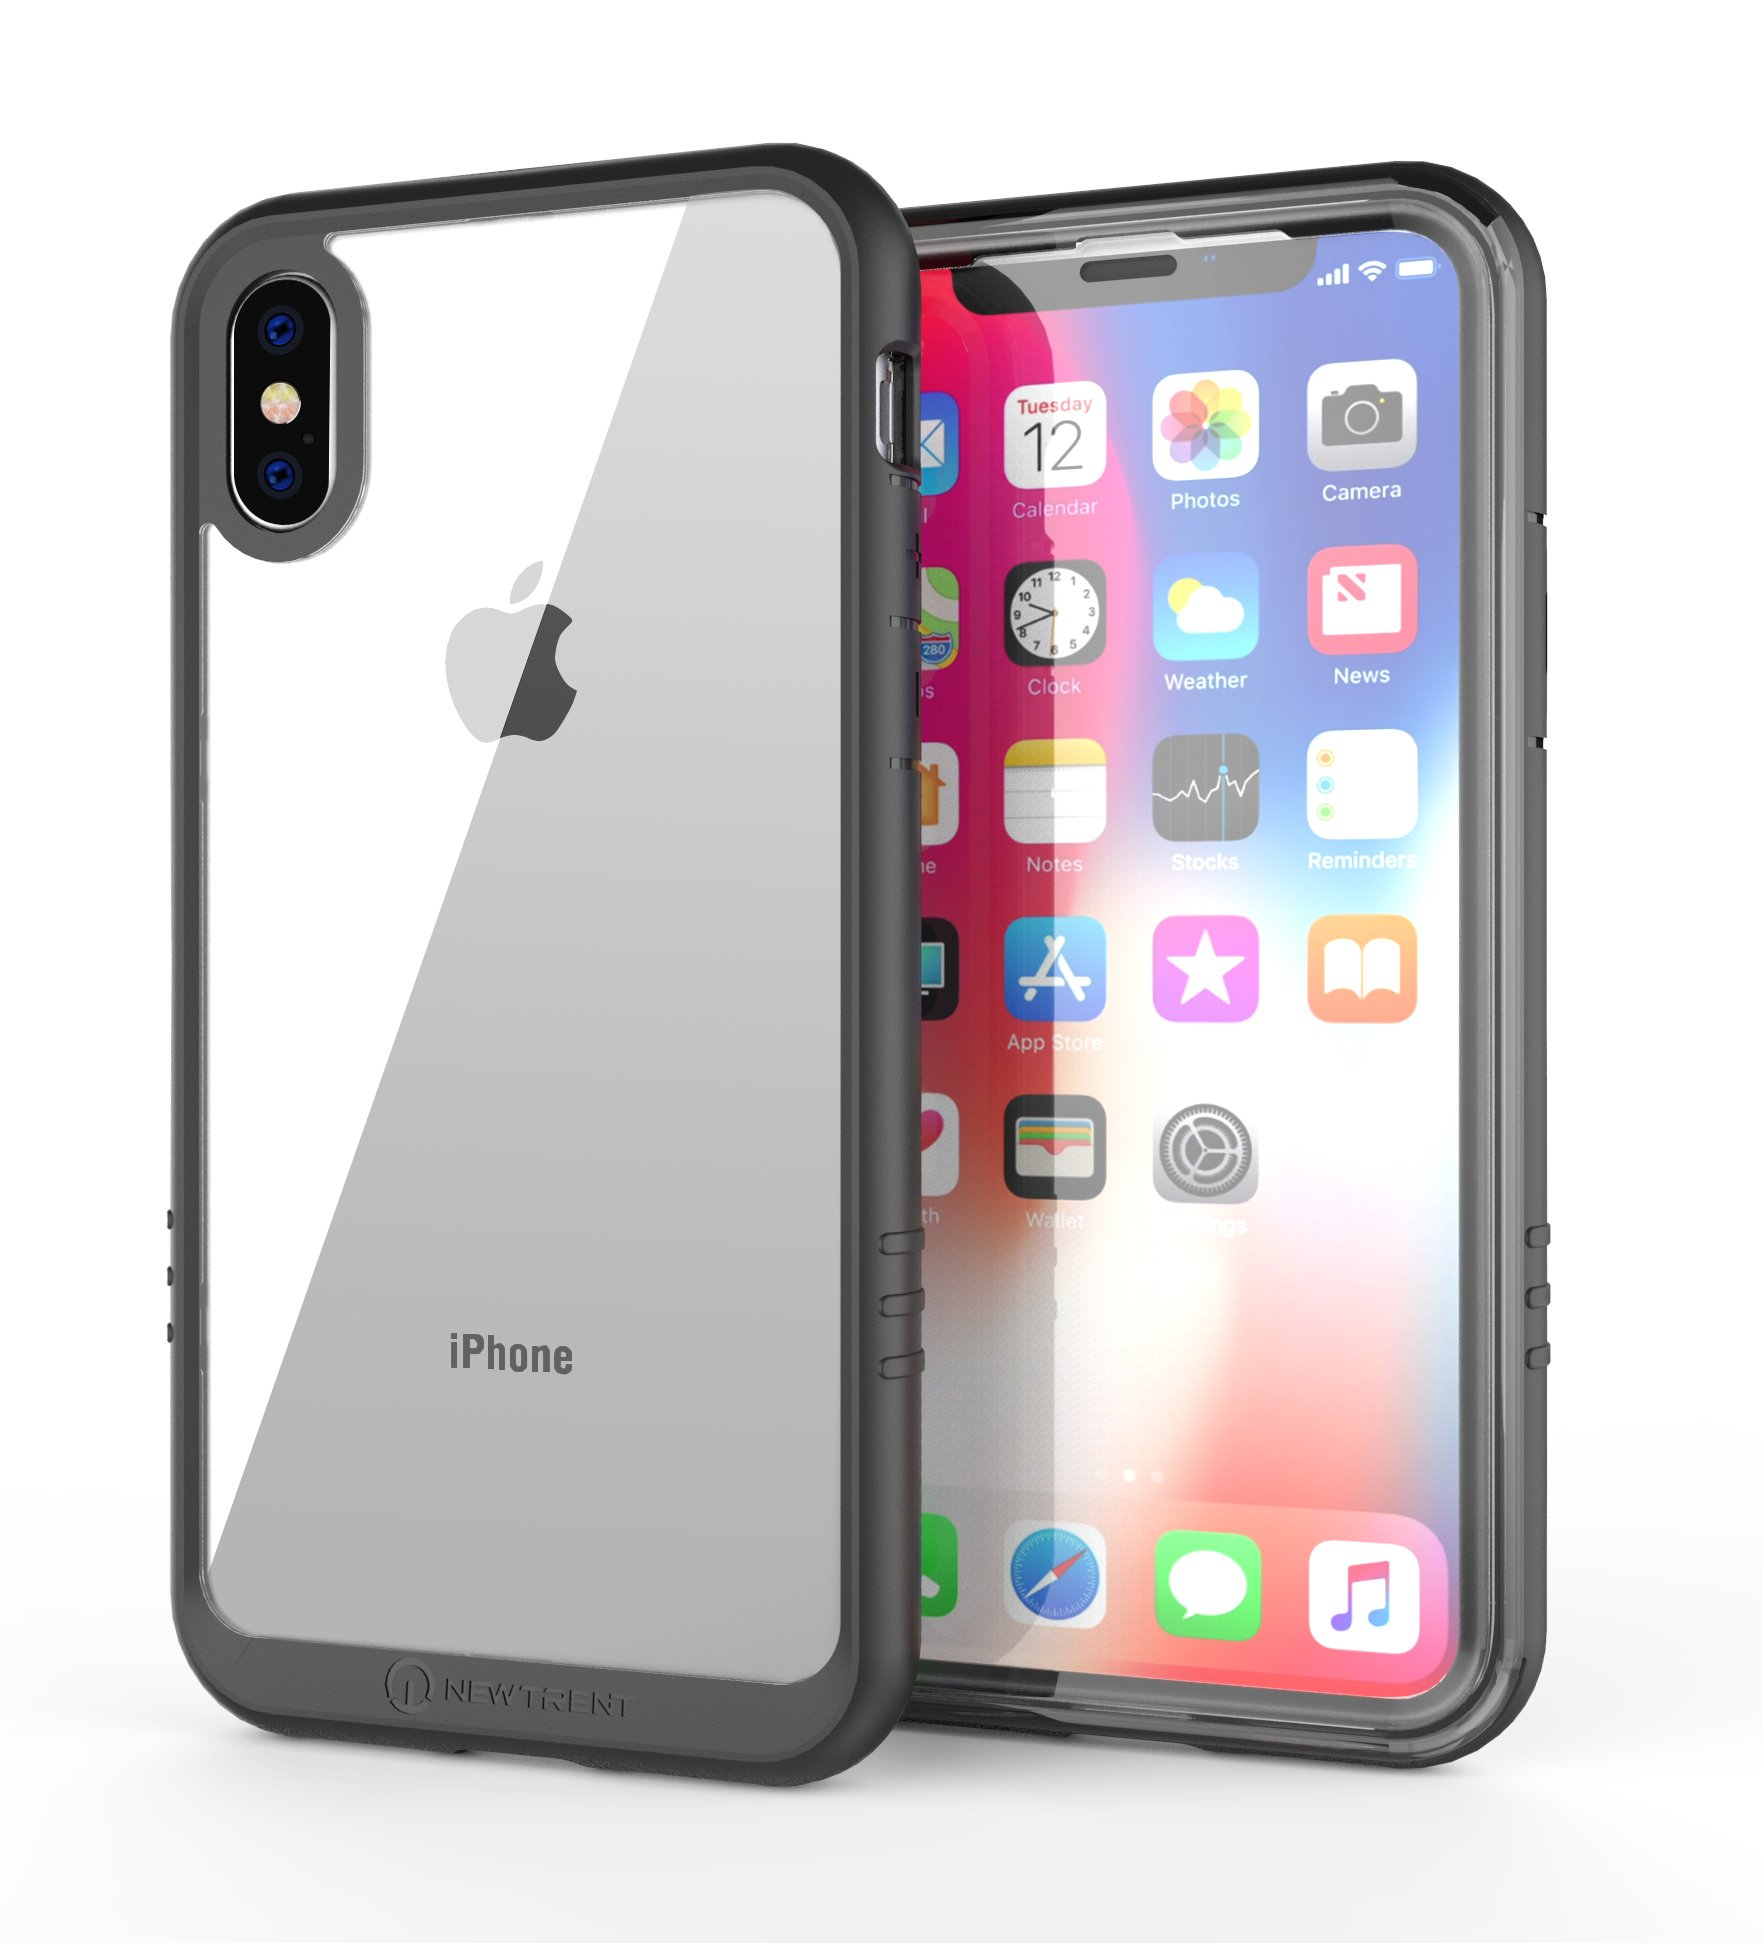 New Trent iPhone XS Case (2018) / iPhone X Case (2017) New Trent Azure Full-Body Transparent Protection Case with Built-in Screen Protector for Apple iPhone XS 5.8 inch (2018)